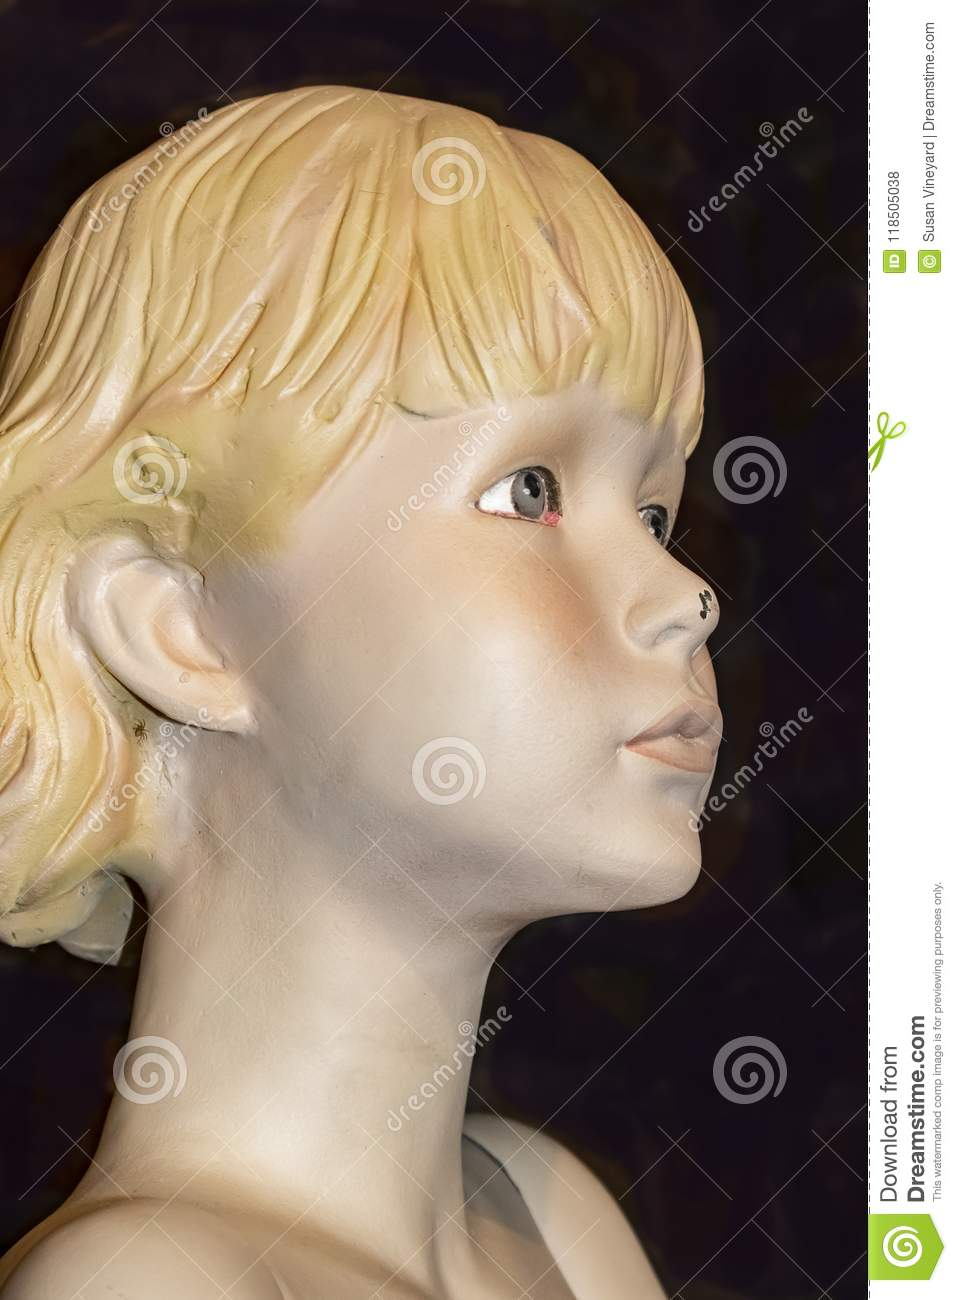 Closeup view of face of old retro mannequin girl with short blond hair and a chip in her nose and a spider behind her ear against